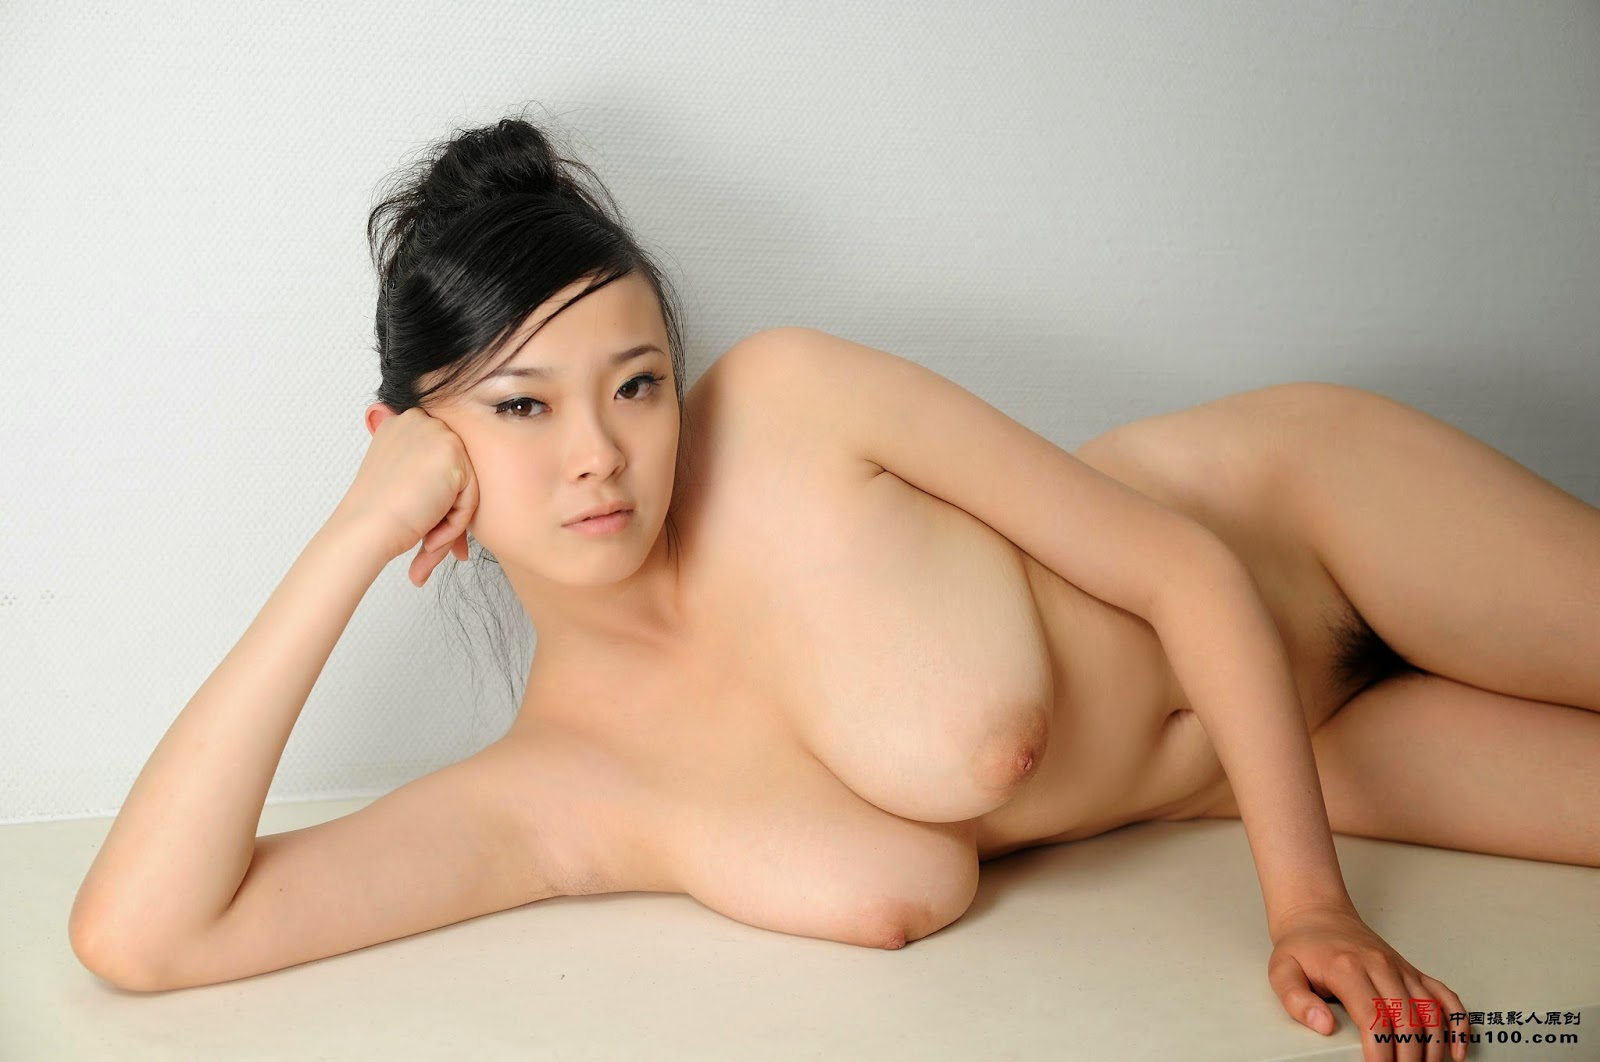 xxx-chinese-people-having-sex